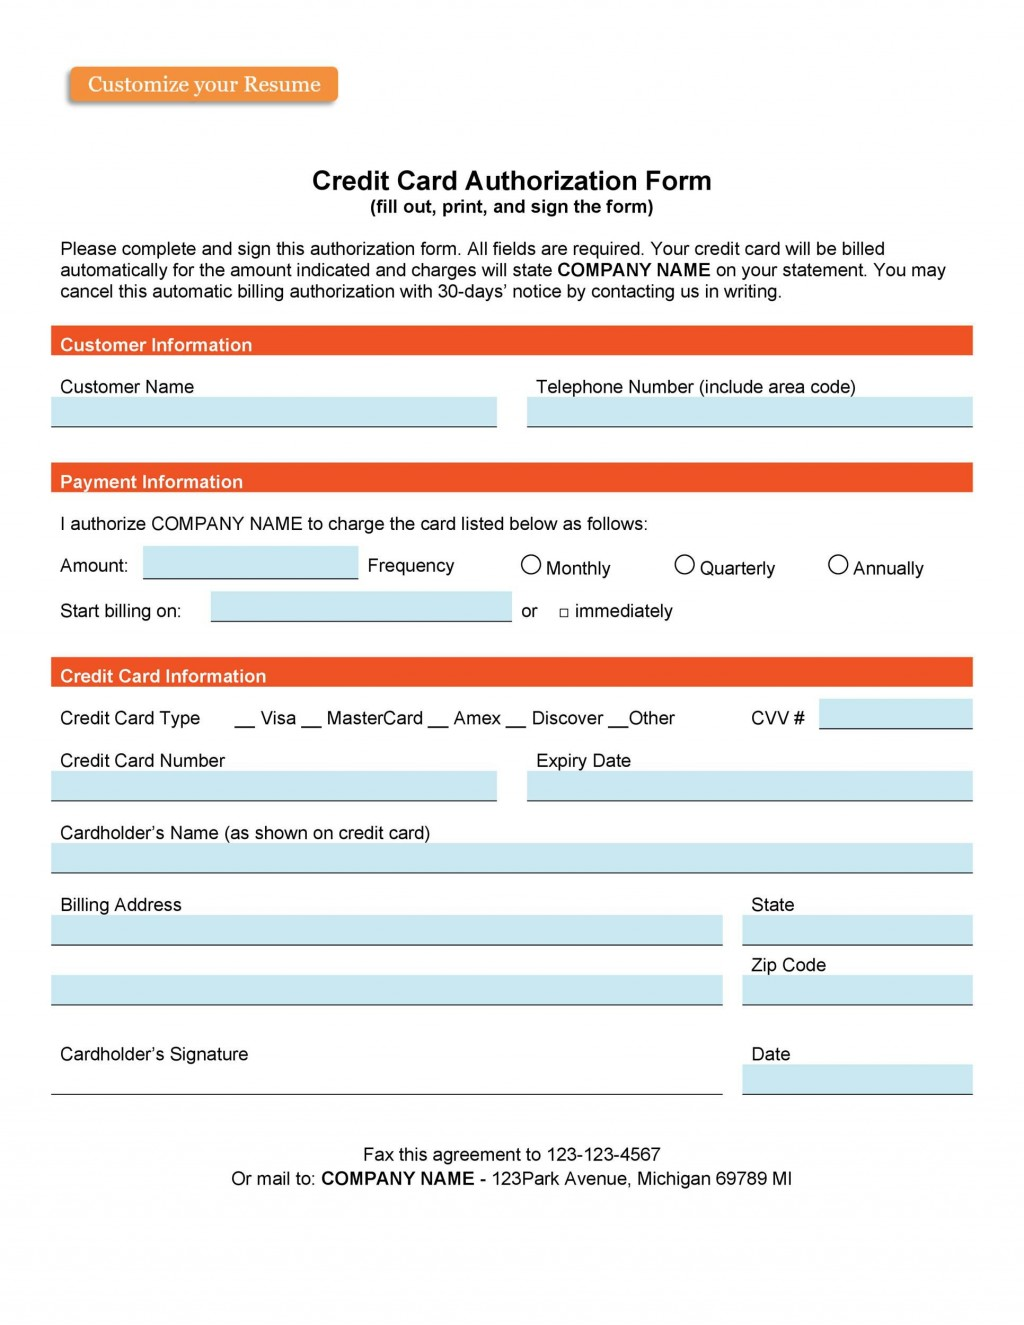 008 Incredible Credit Card Form Template Excel High Resolution  Authorization PaymentLarge